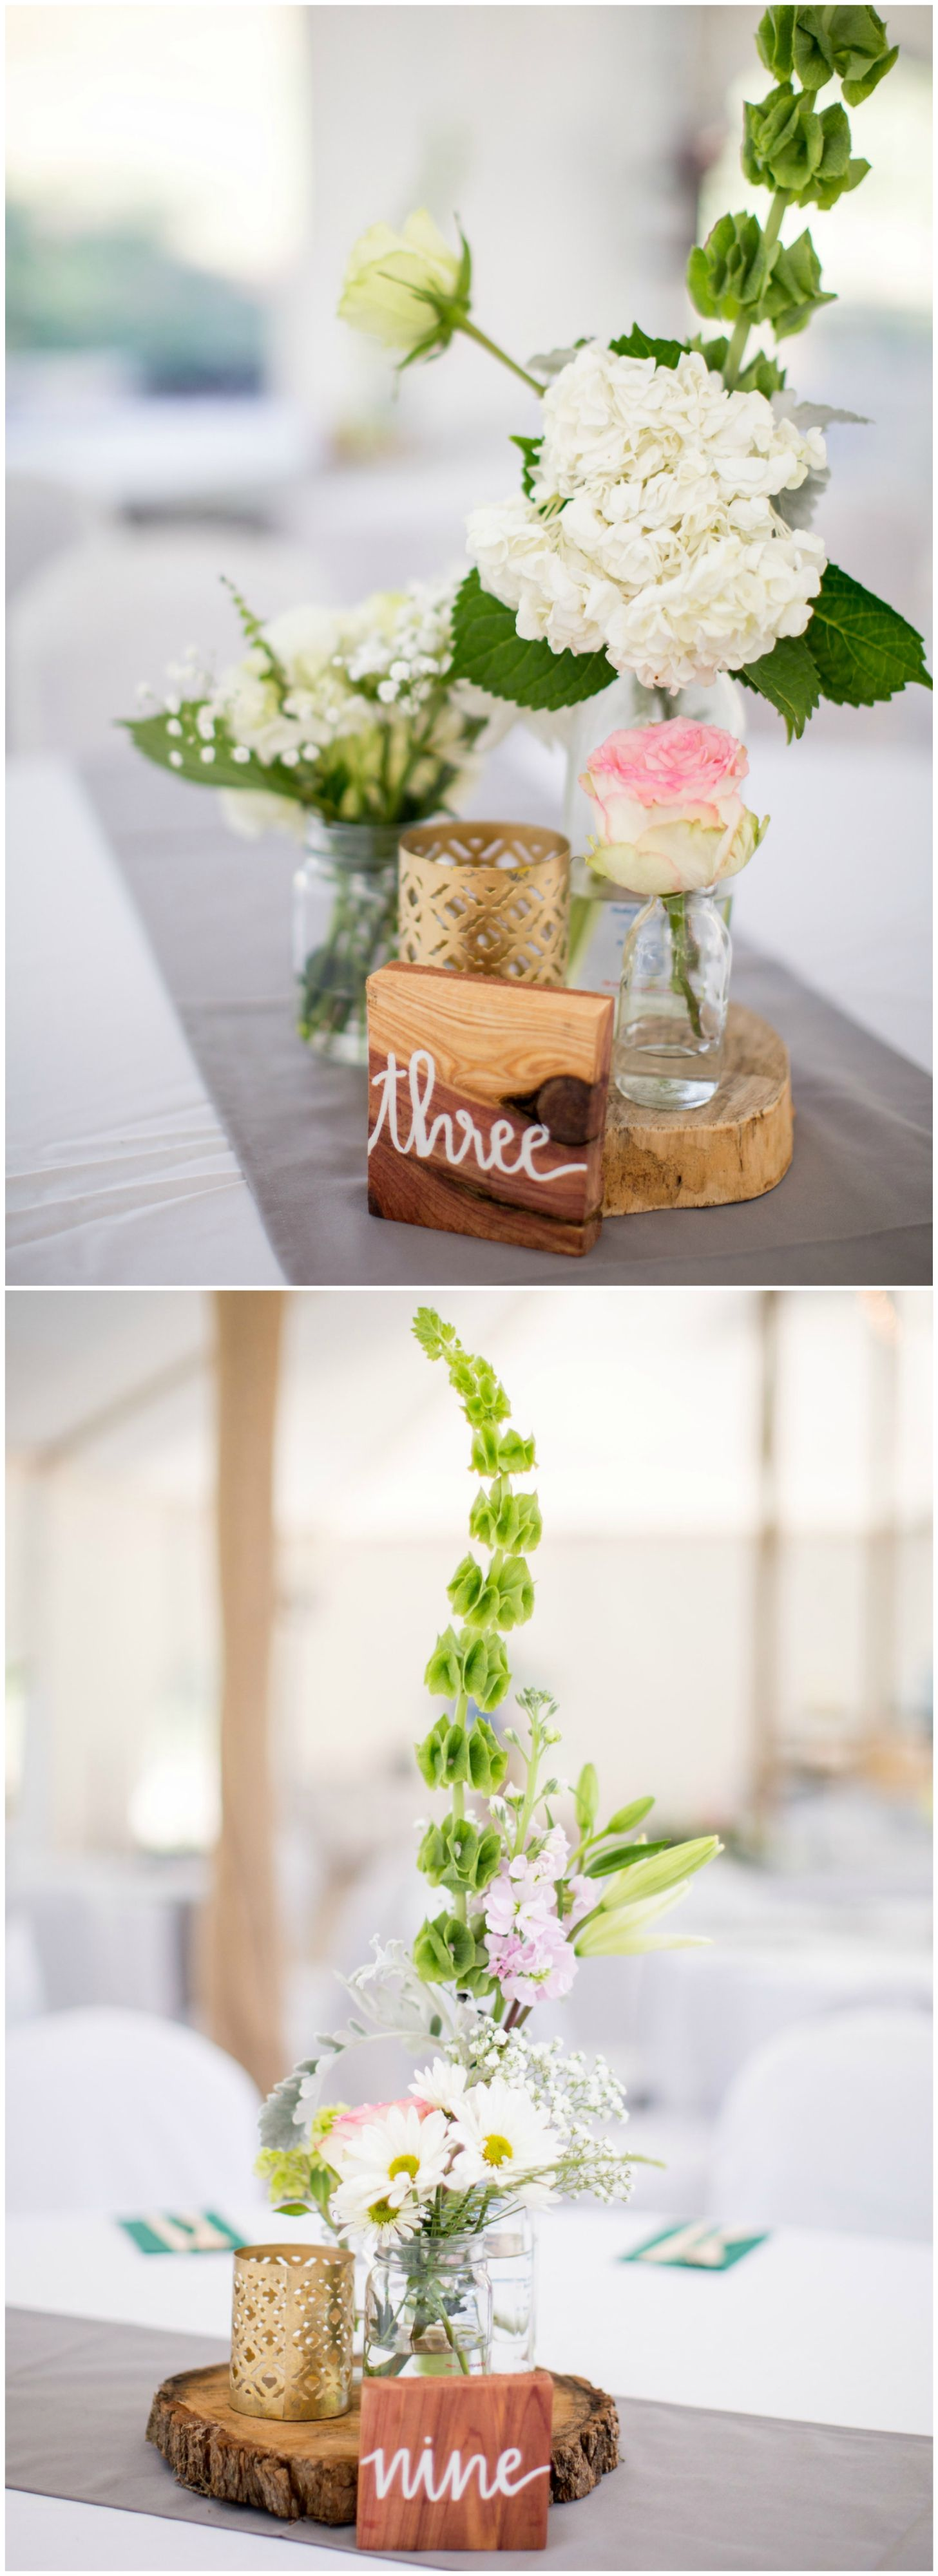 The Smarter Way to Wed | Floral centerpieces, Hydrangea and Centrepieces